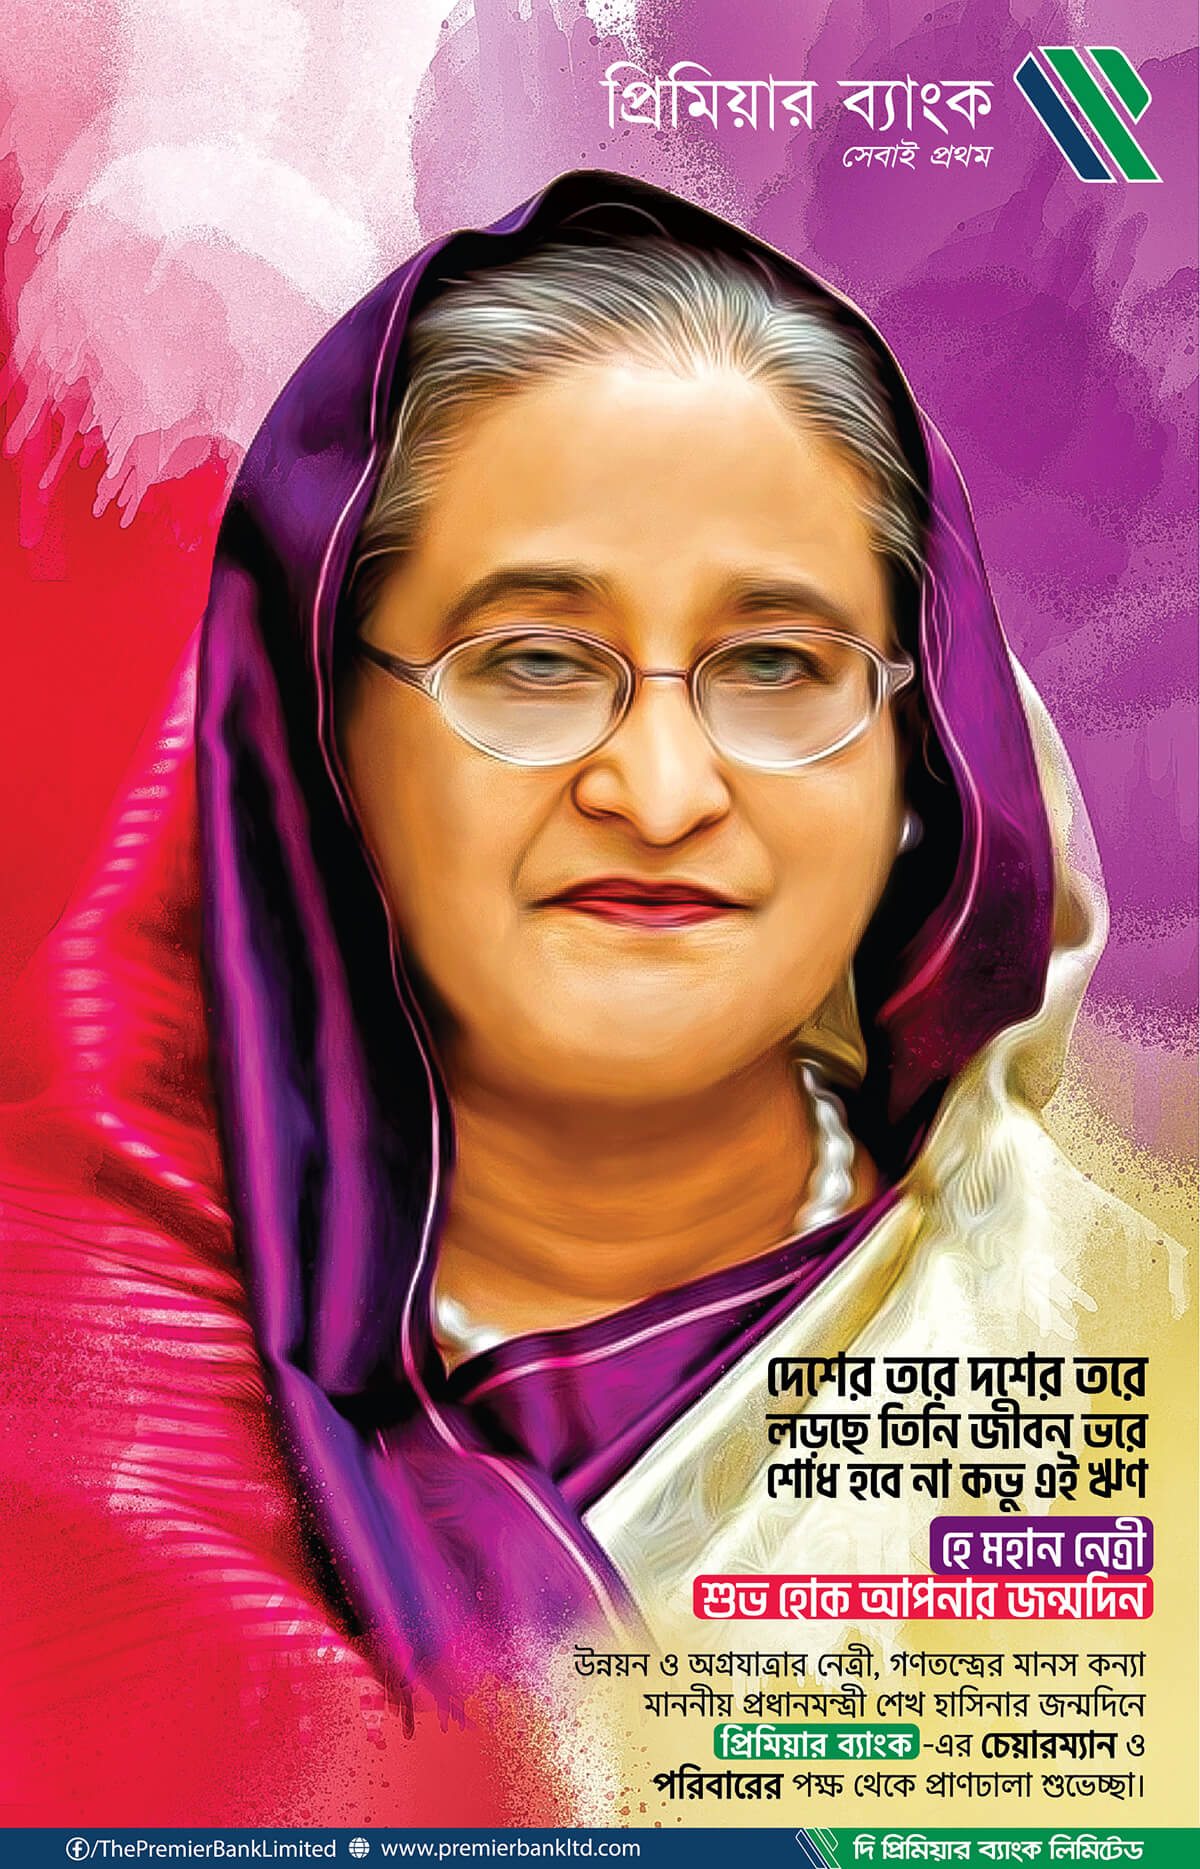 Birthday Greeting of our Honorable Prime Minister Sheikh Hasina